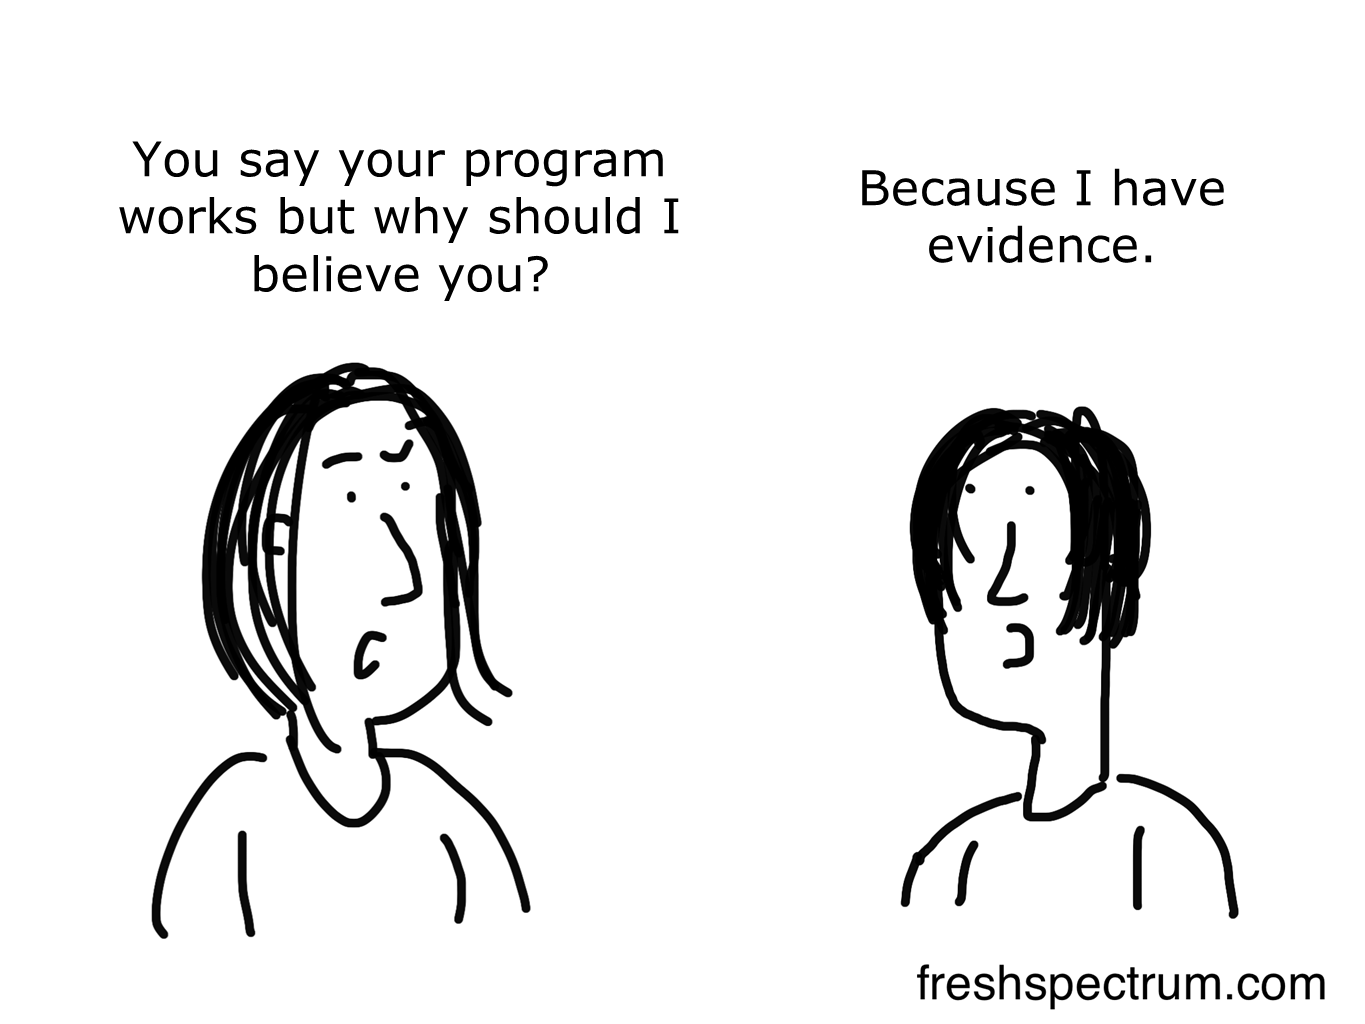 http://blogs.oregonstate.edu/programevaluation/files/2014/06/I-have-evidence-cartoon.png